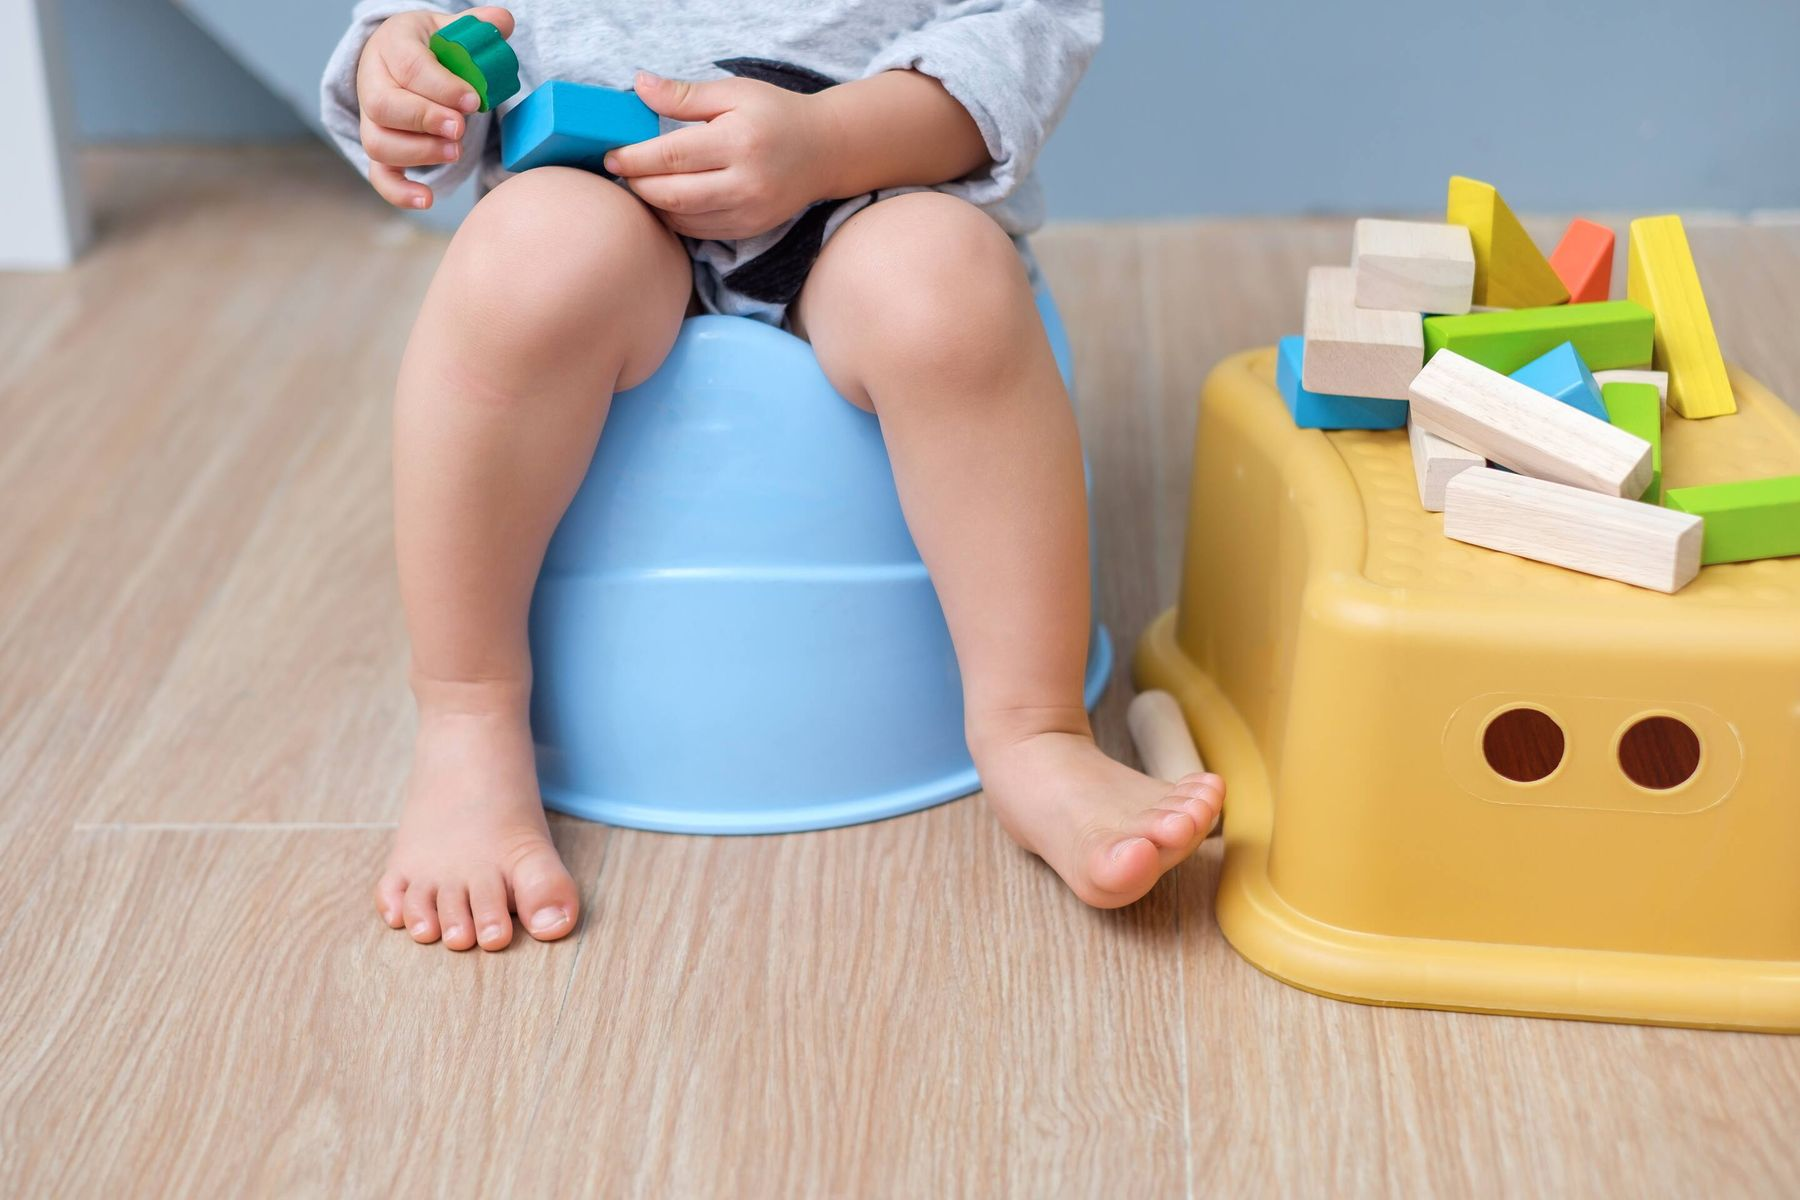 Potty training: steps and tips for an easy transition